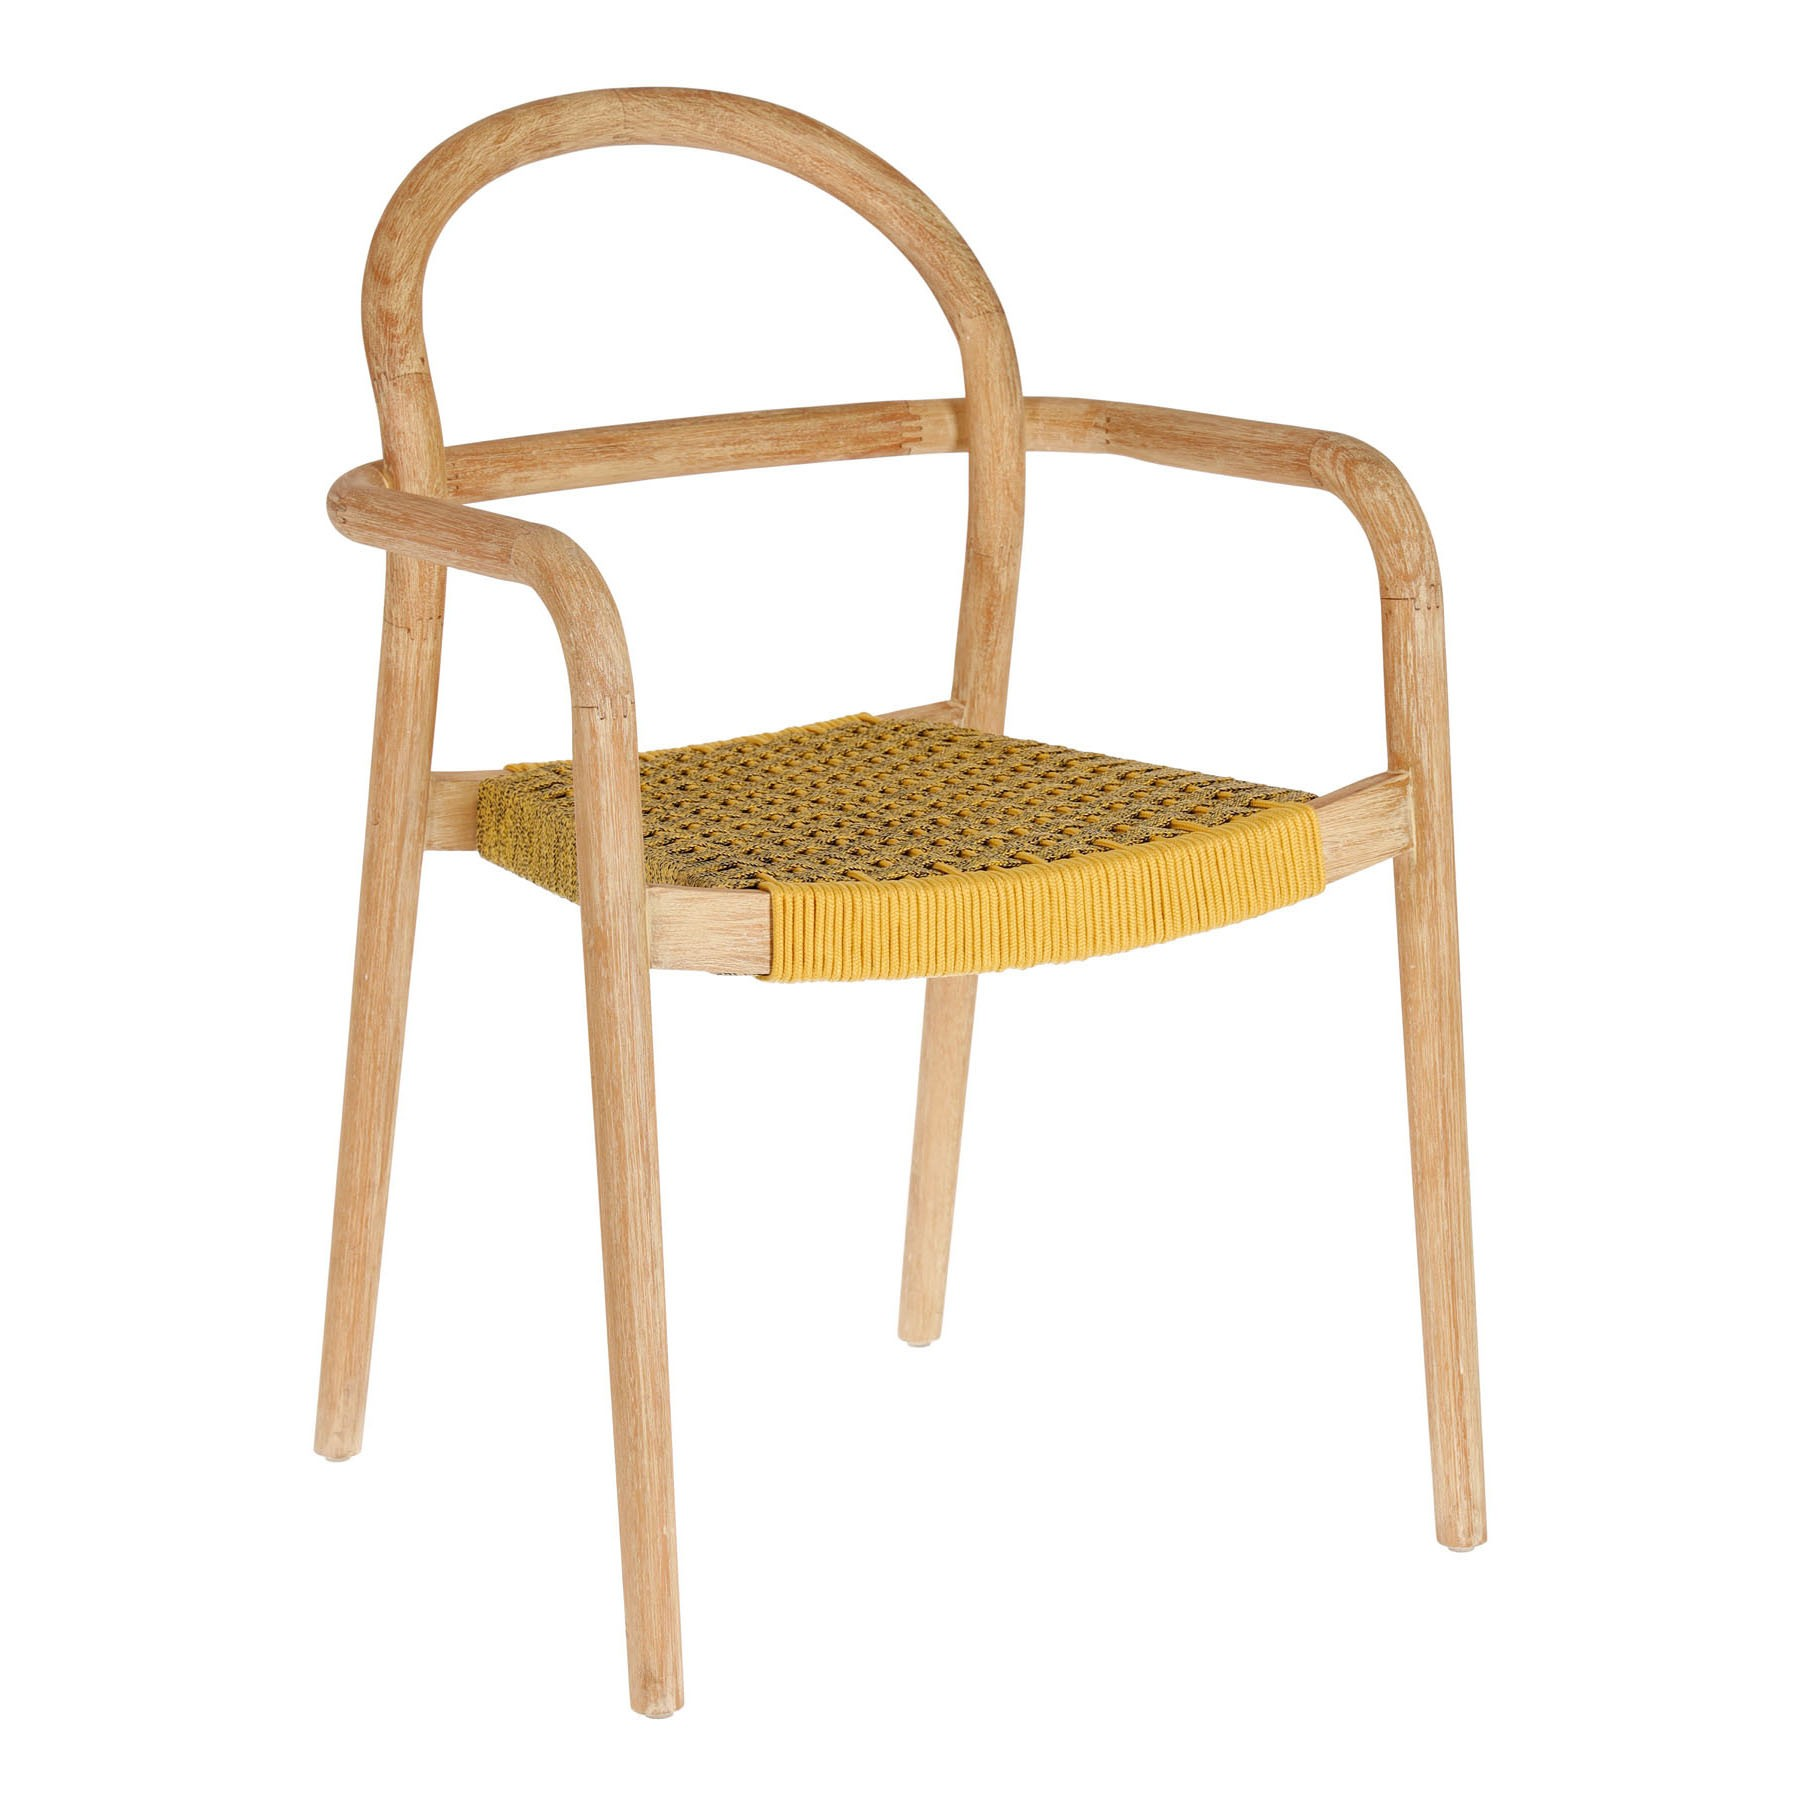 Petone Eucalyptus Timber Dining Chair, Natural / Mustard